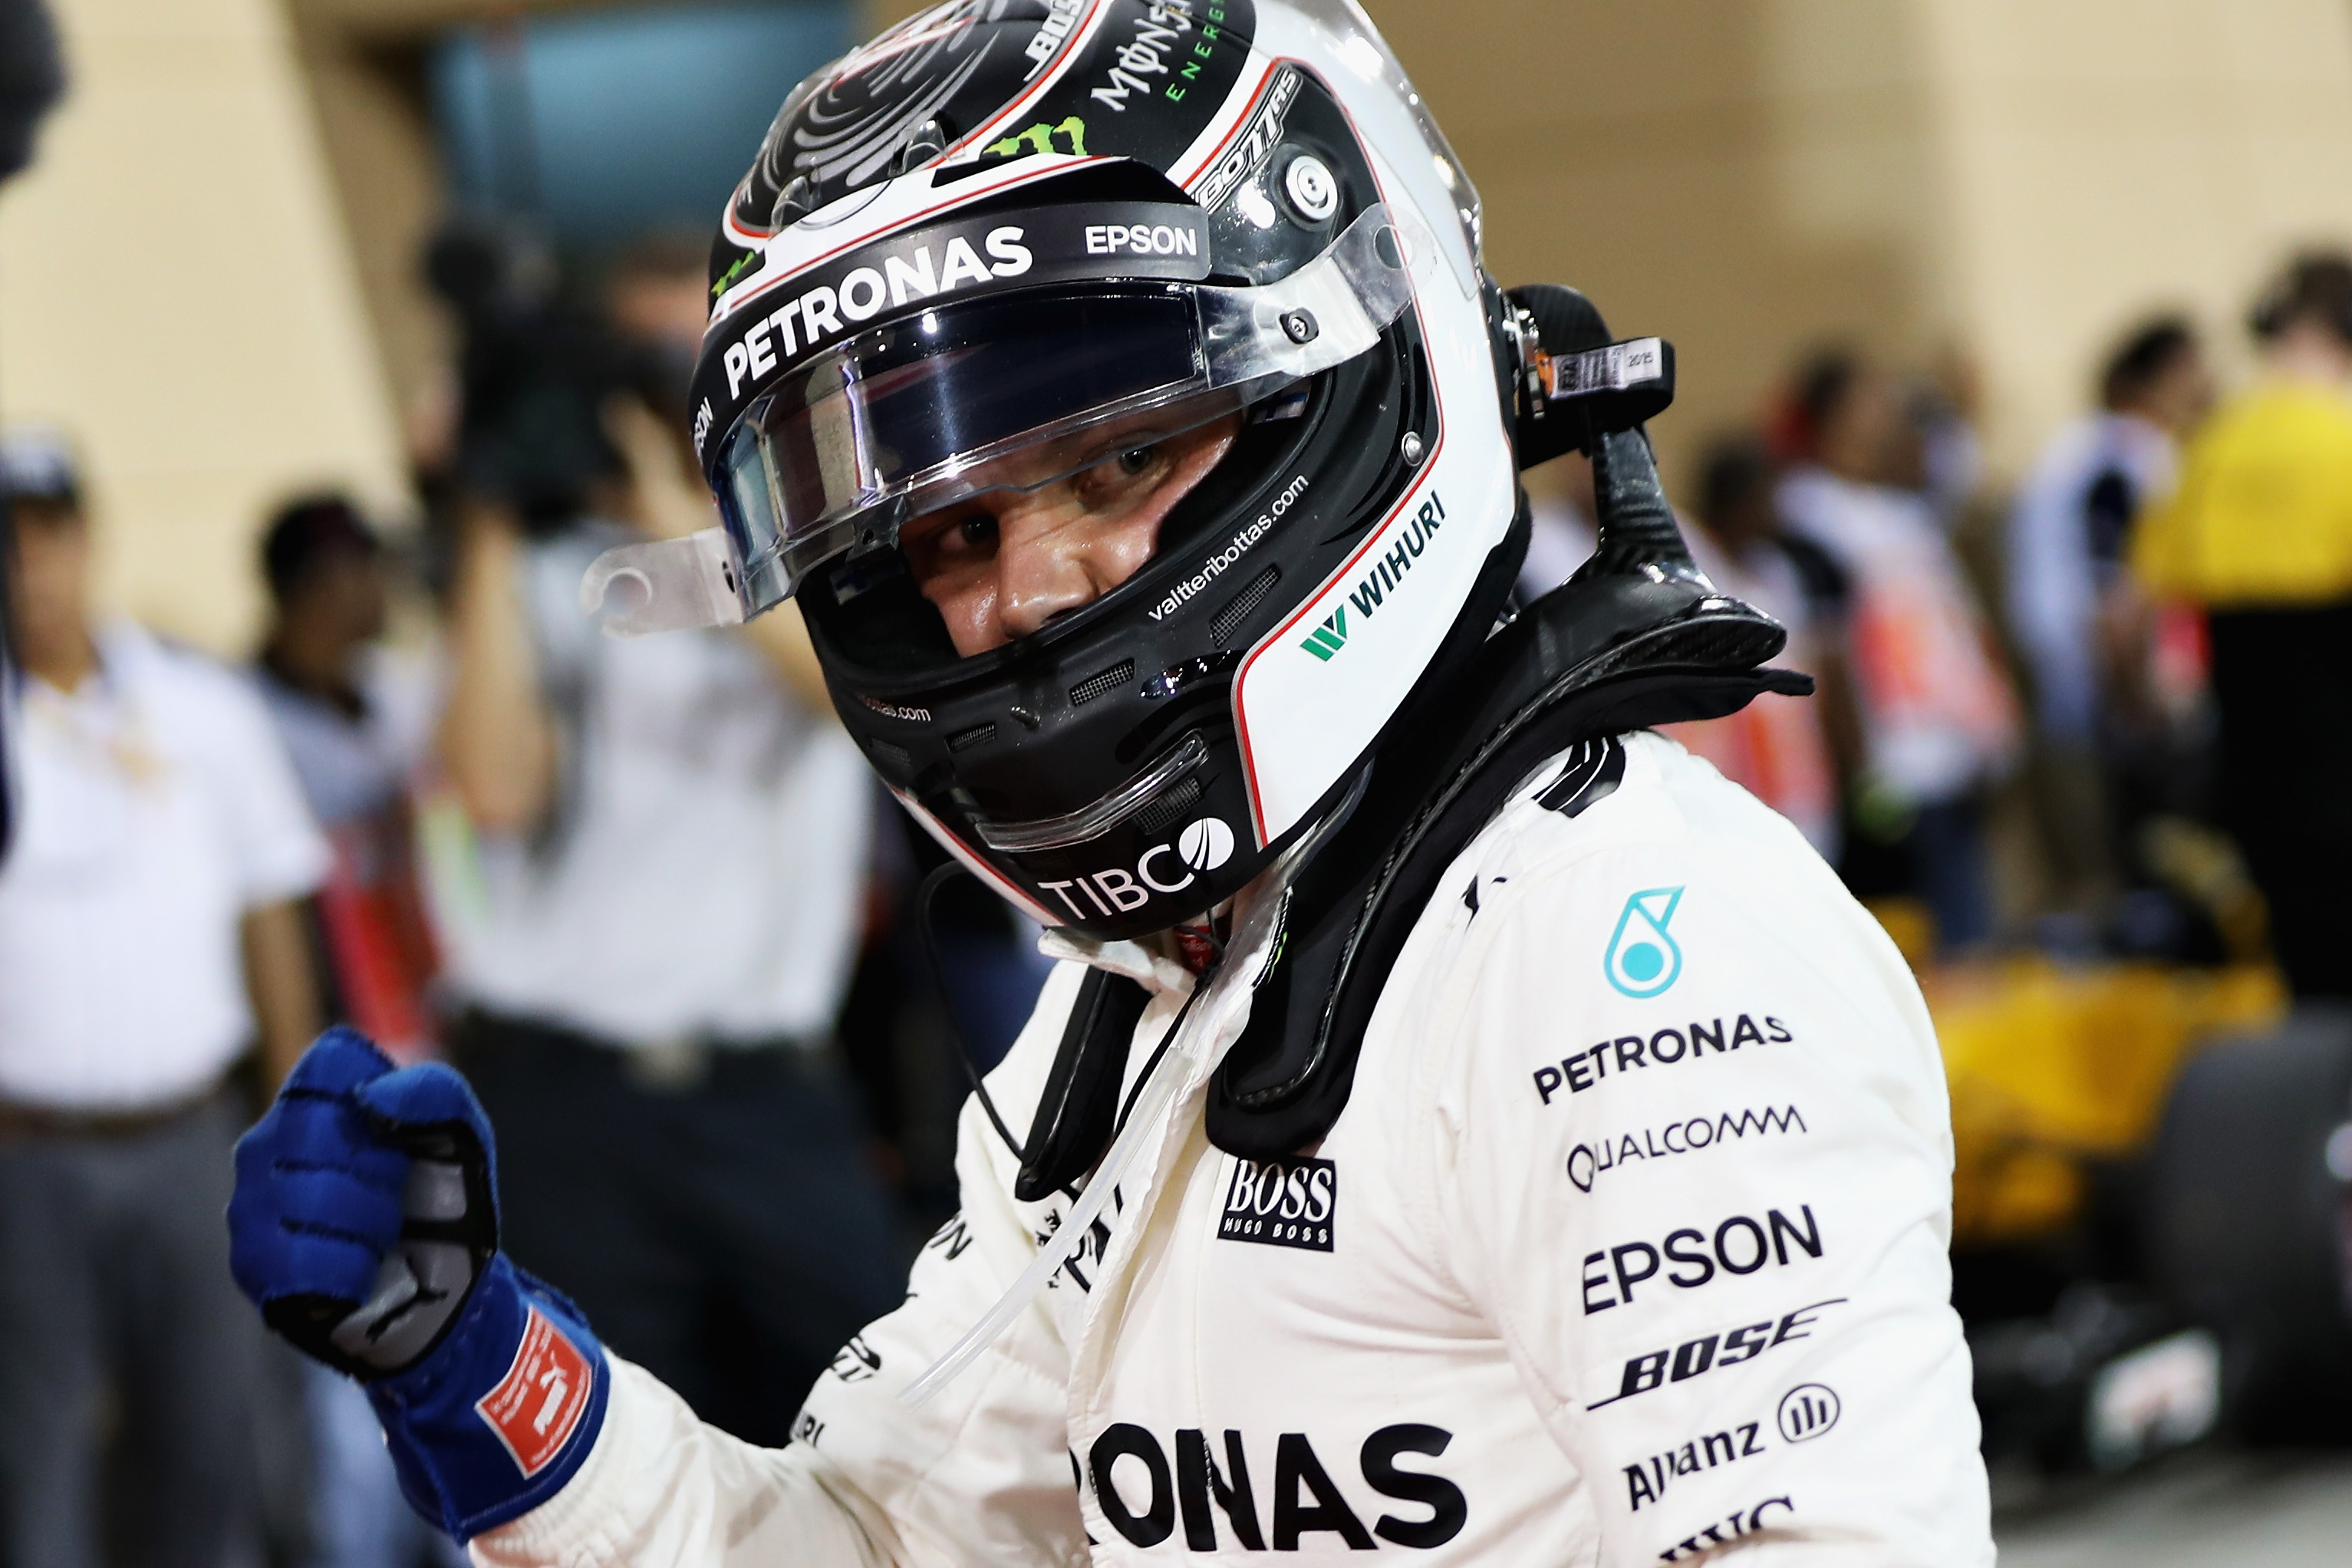 Valtteri Bottas Storms To First Career Pole In Bahrain